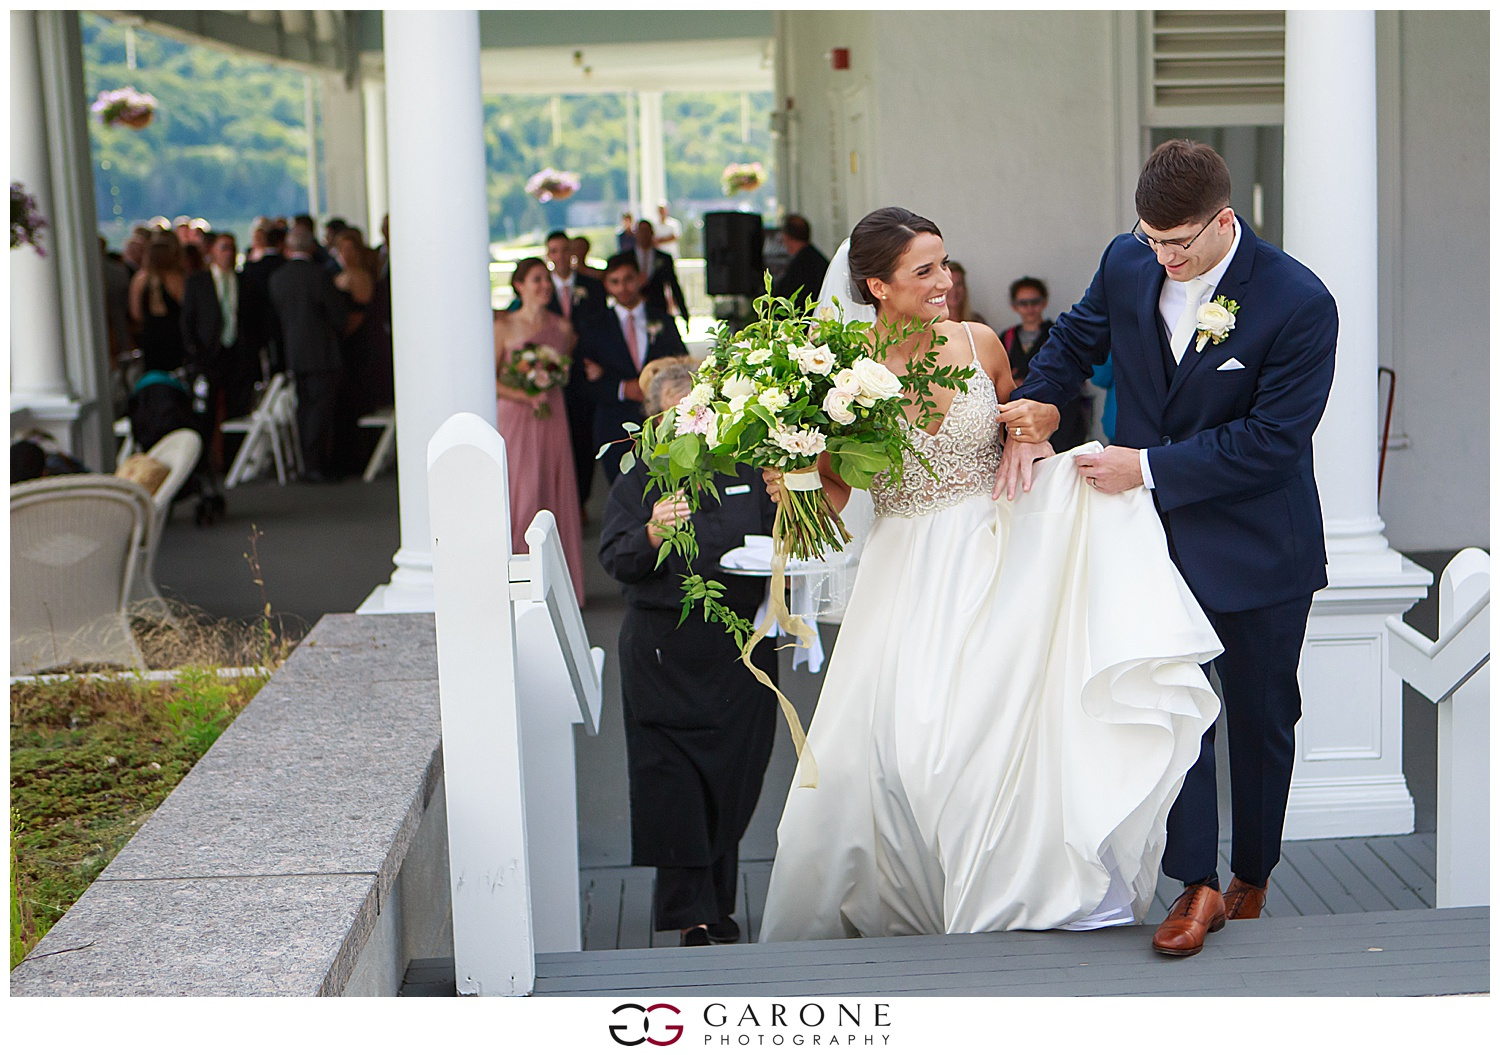 Omni_Mount_Washington_hotel_Wedding_White_Mountain_Wedding_Garone_Photography_0021.jpg